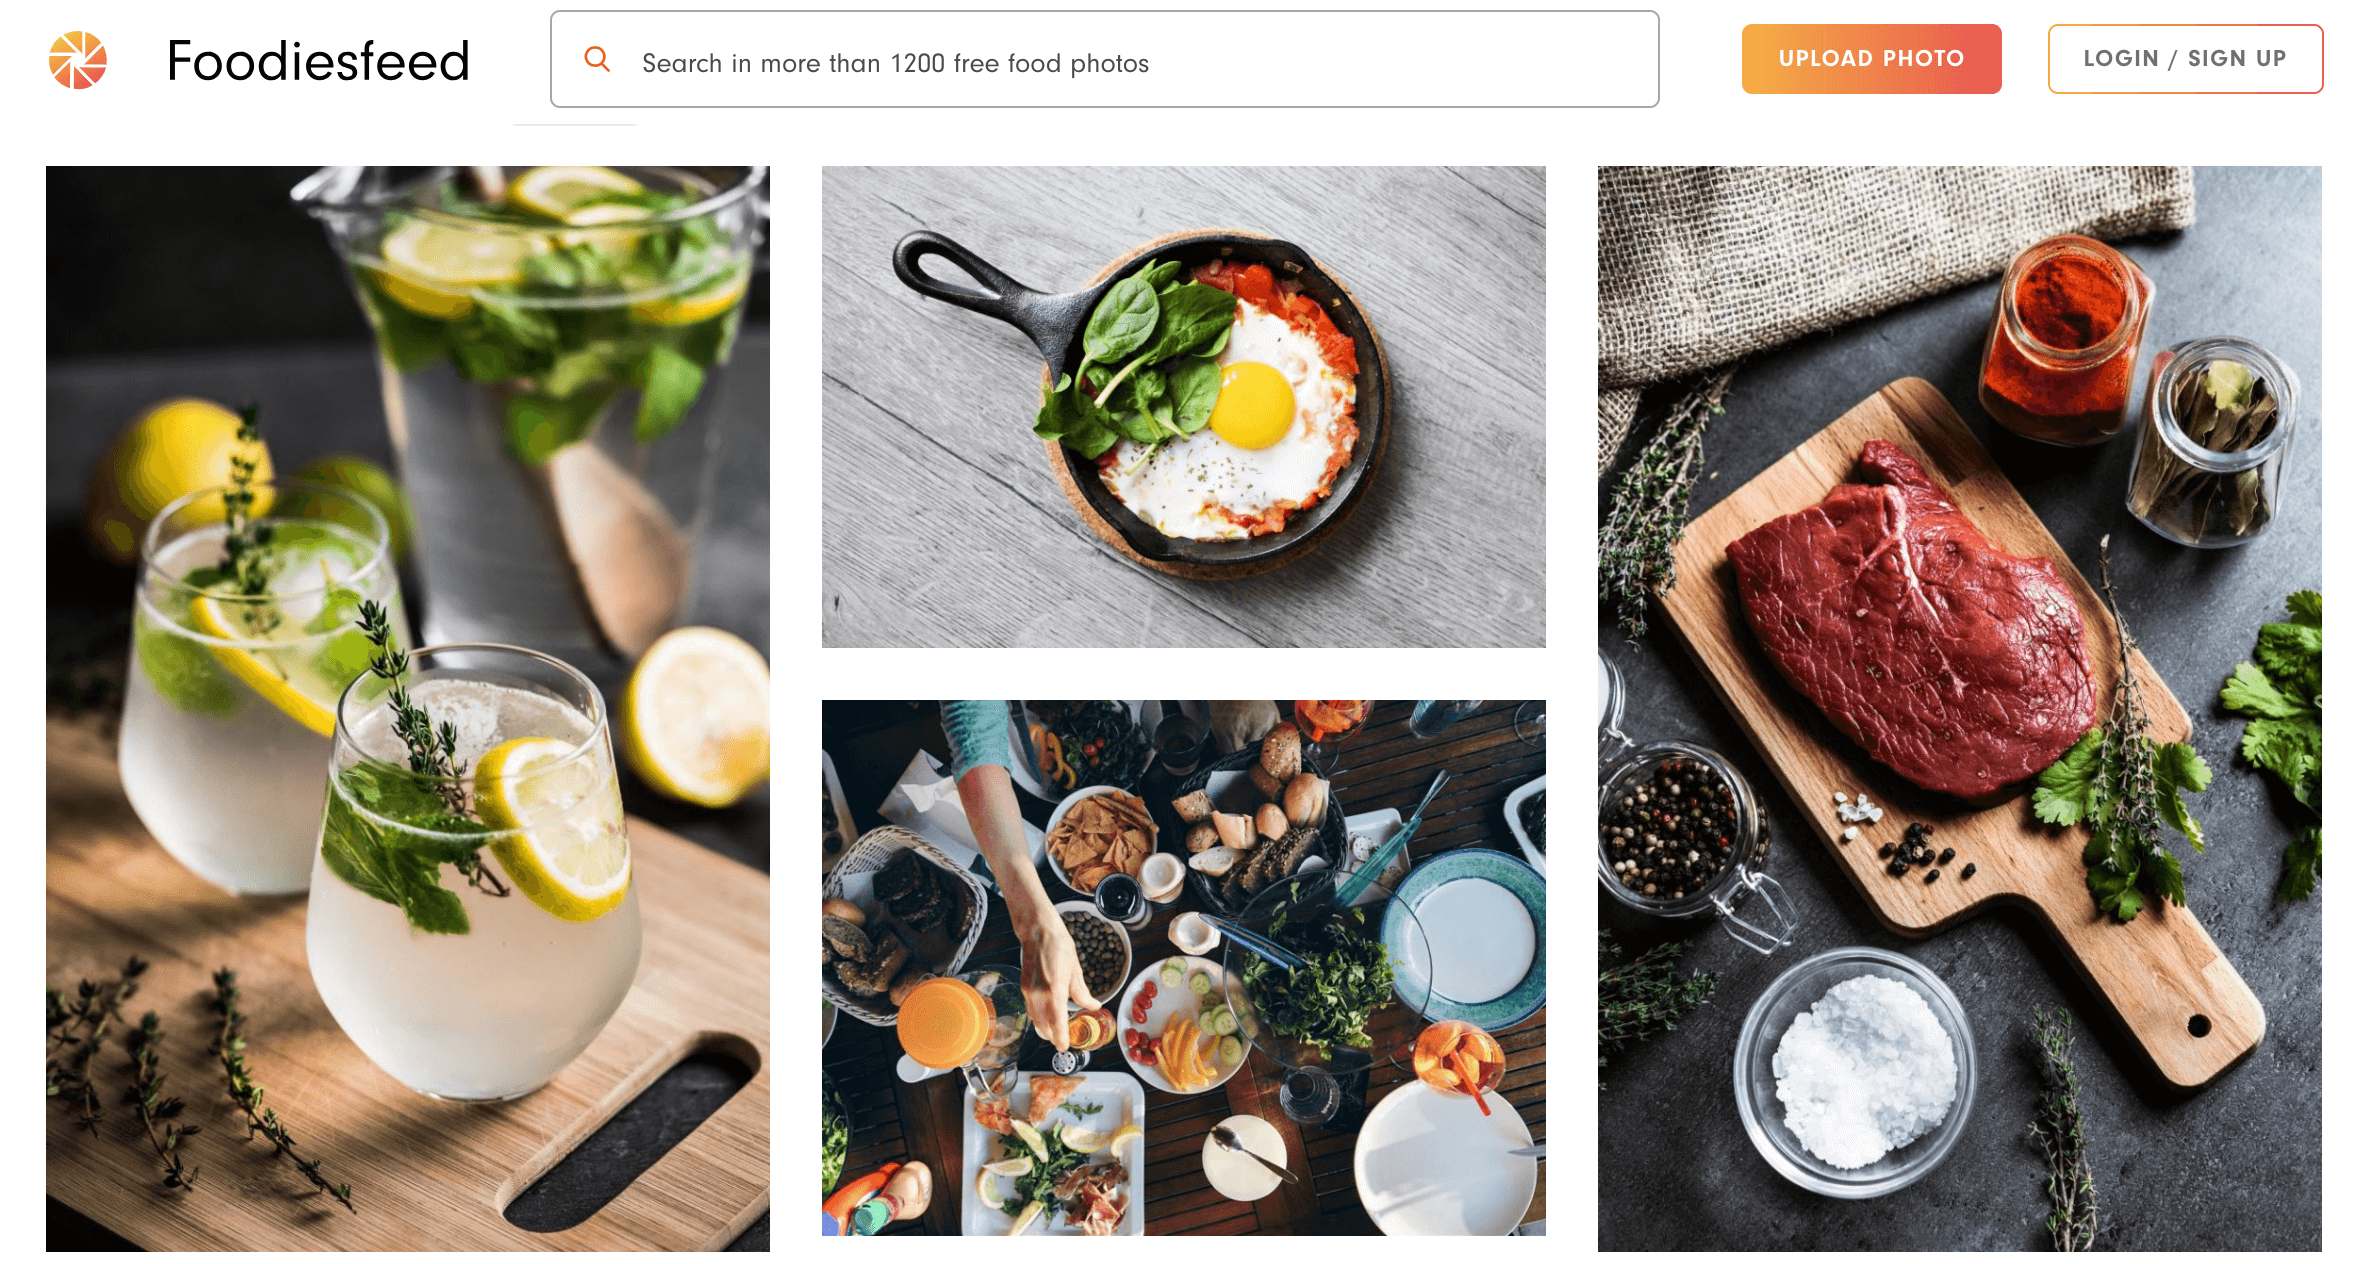 Foodies feed home page